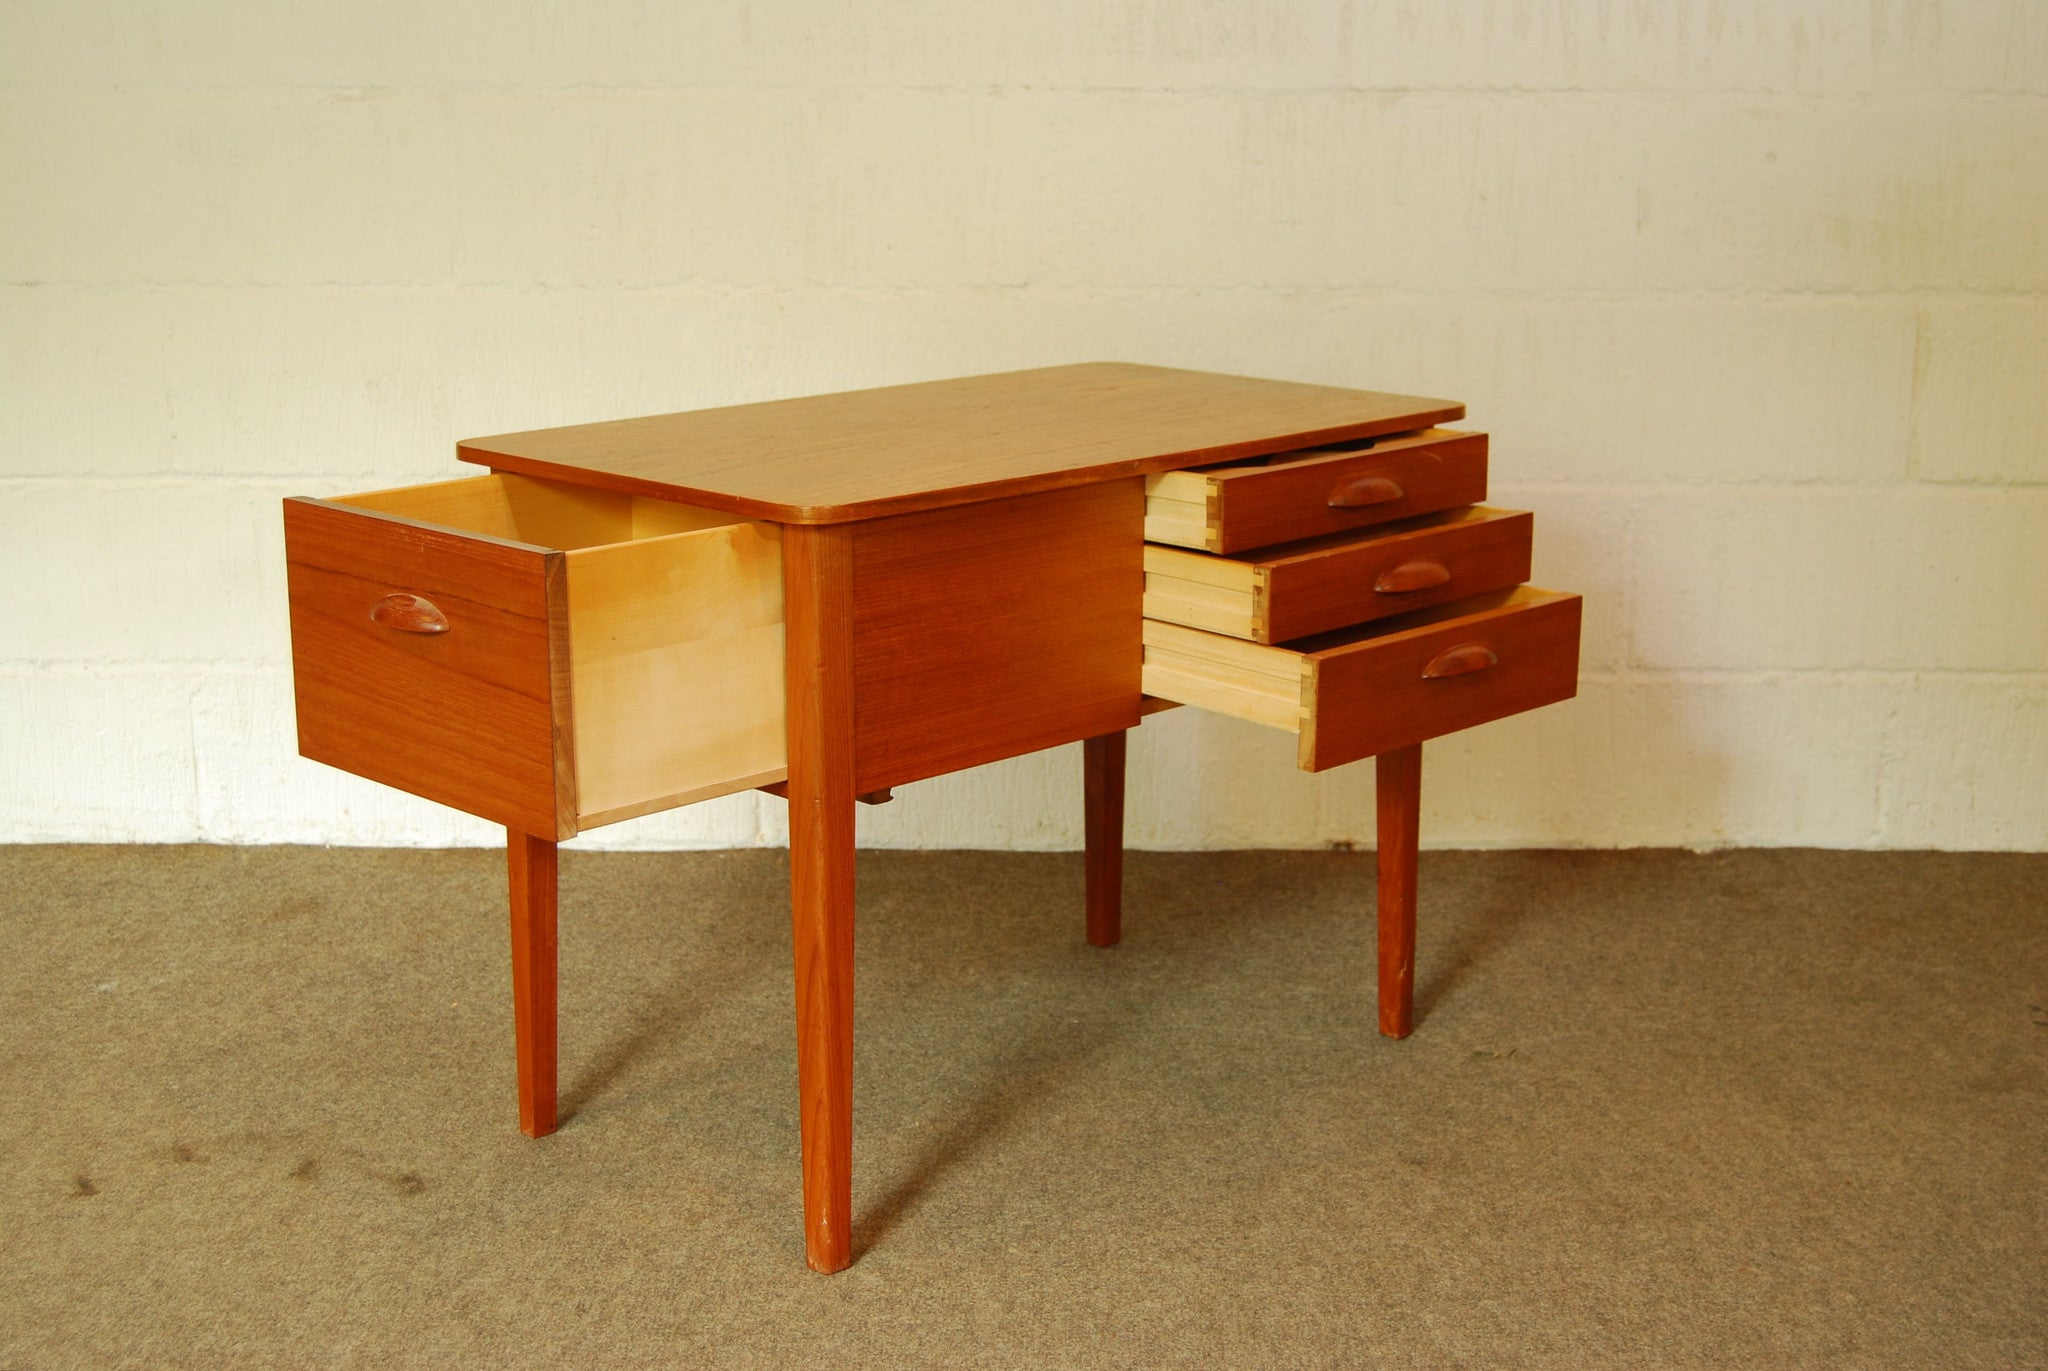 Birch-lined teak sewing table